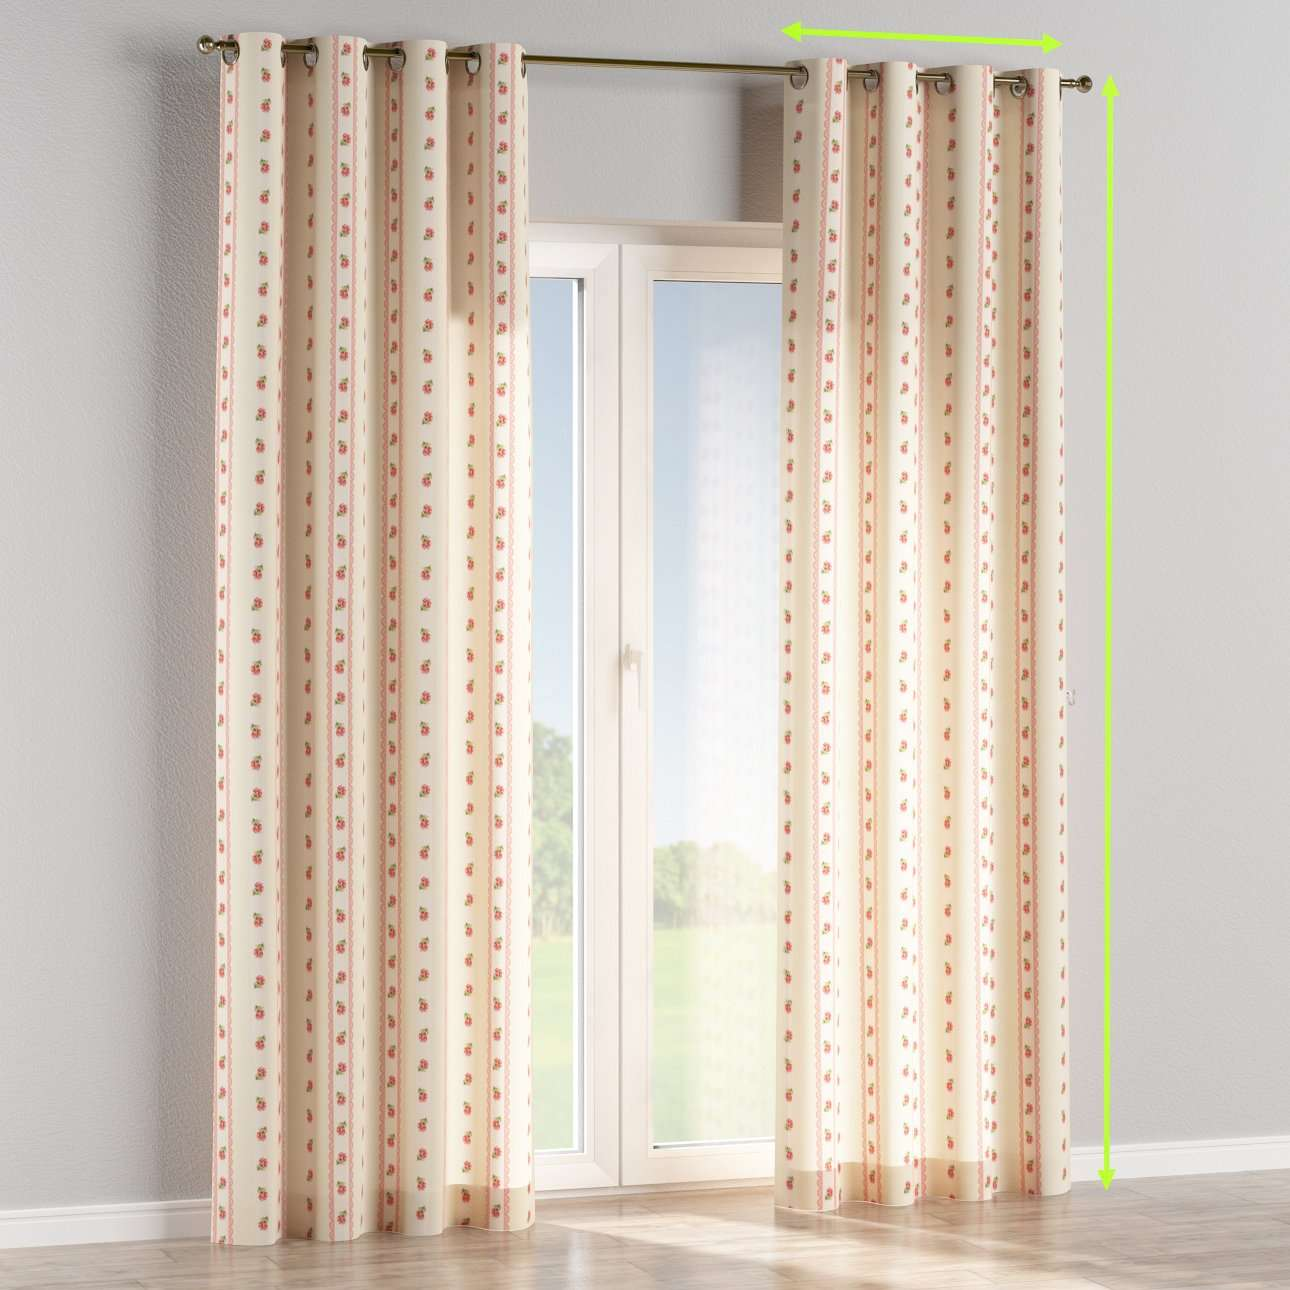 Eyelet curtains in collection Ashley, fabric: 137-48